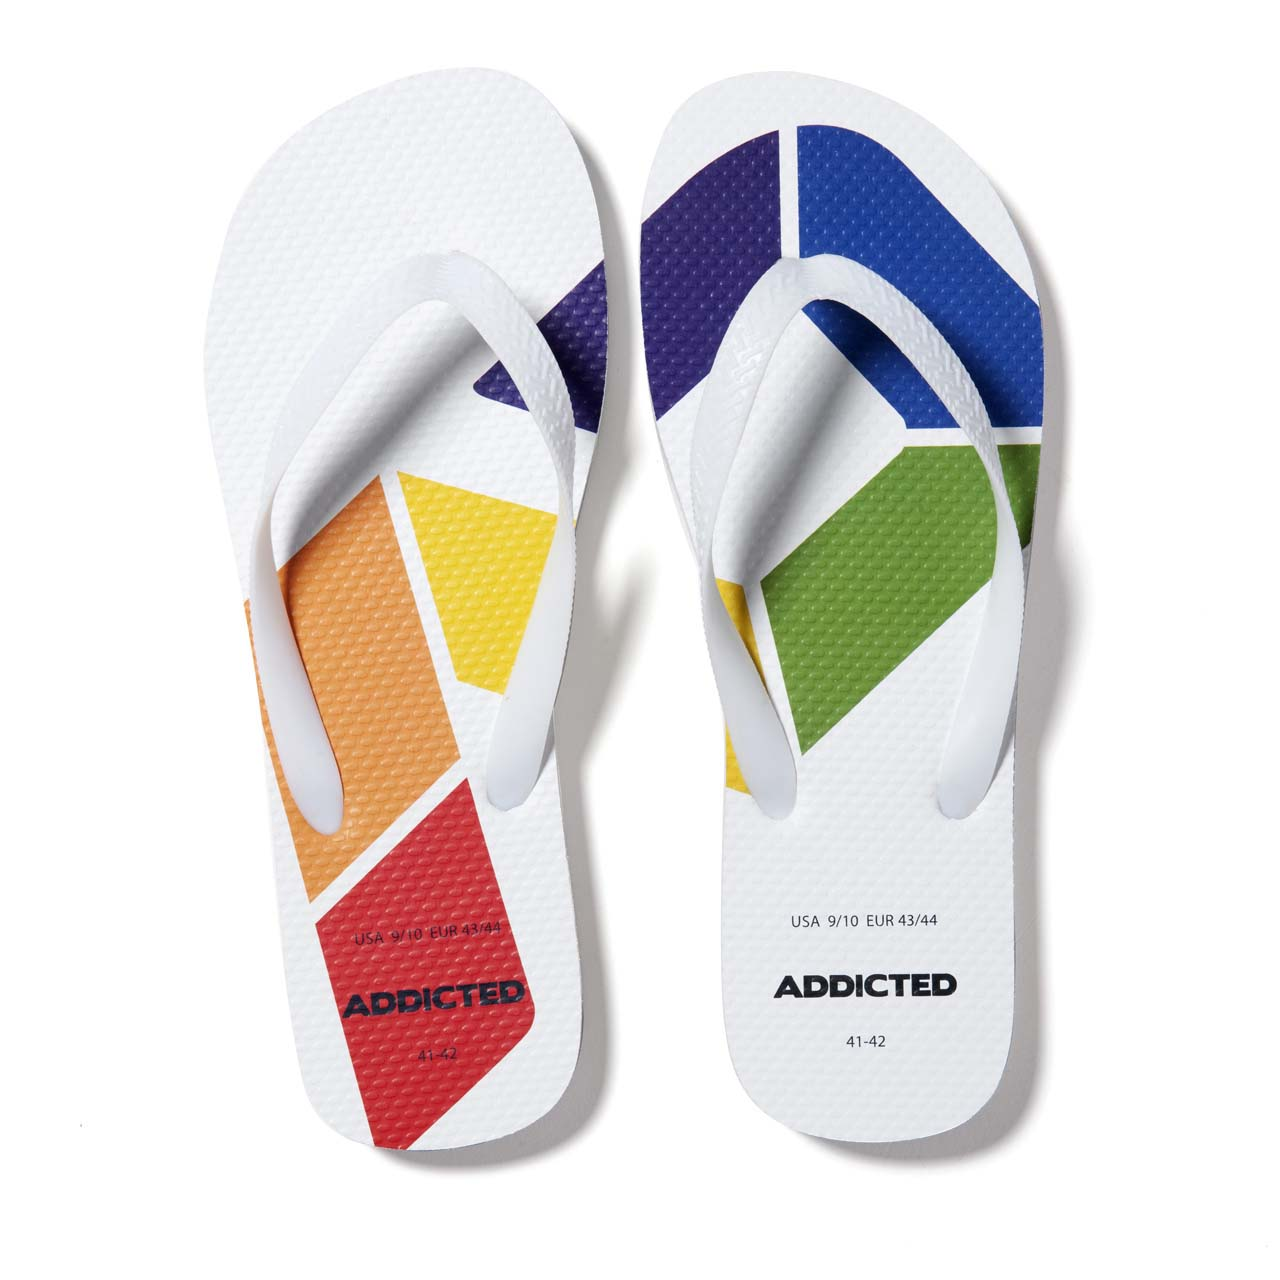 Tong Addicted Rainbow Flip Flop AD795